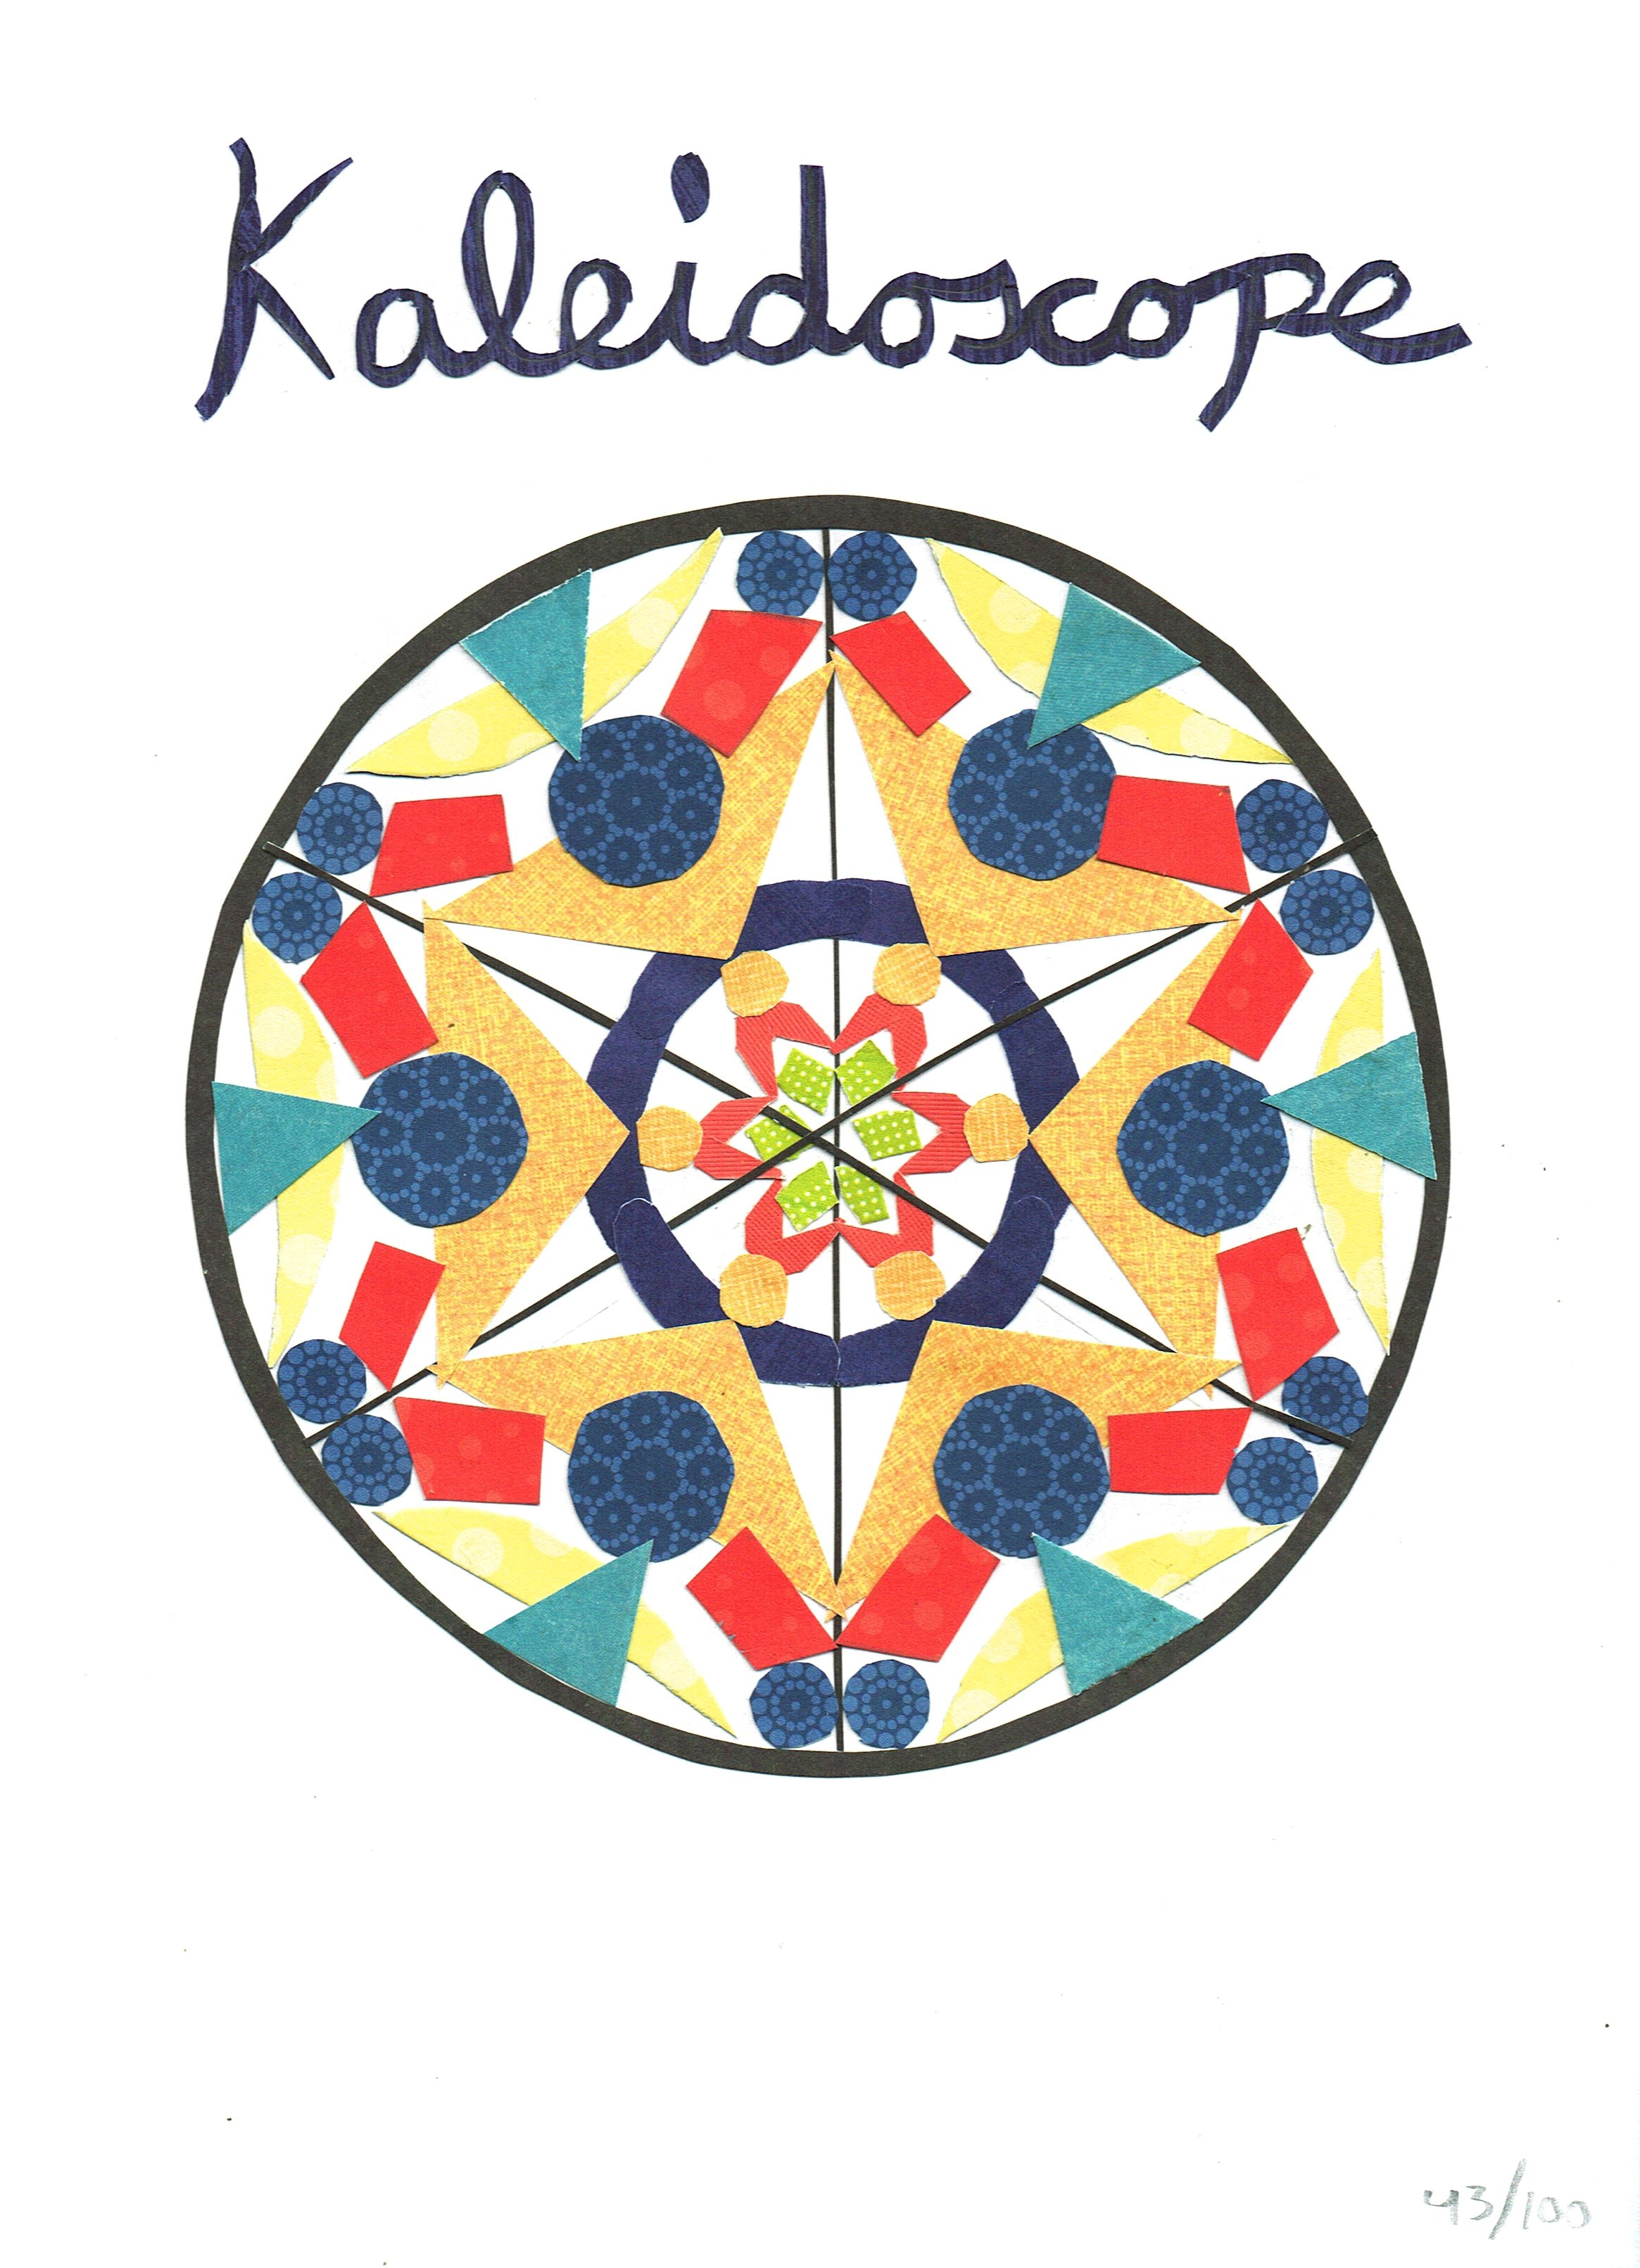 Day 43 - Kaleidoscope